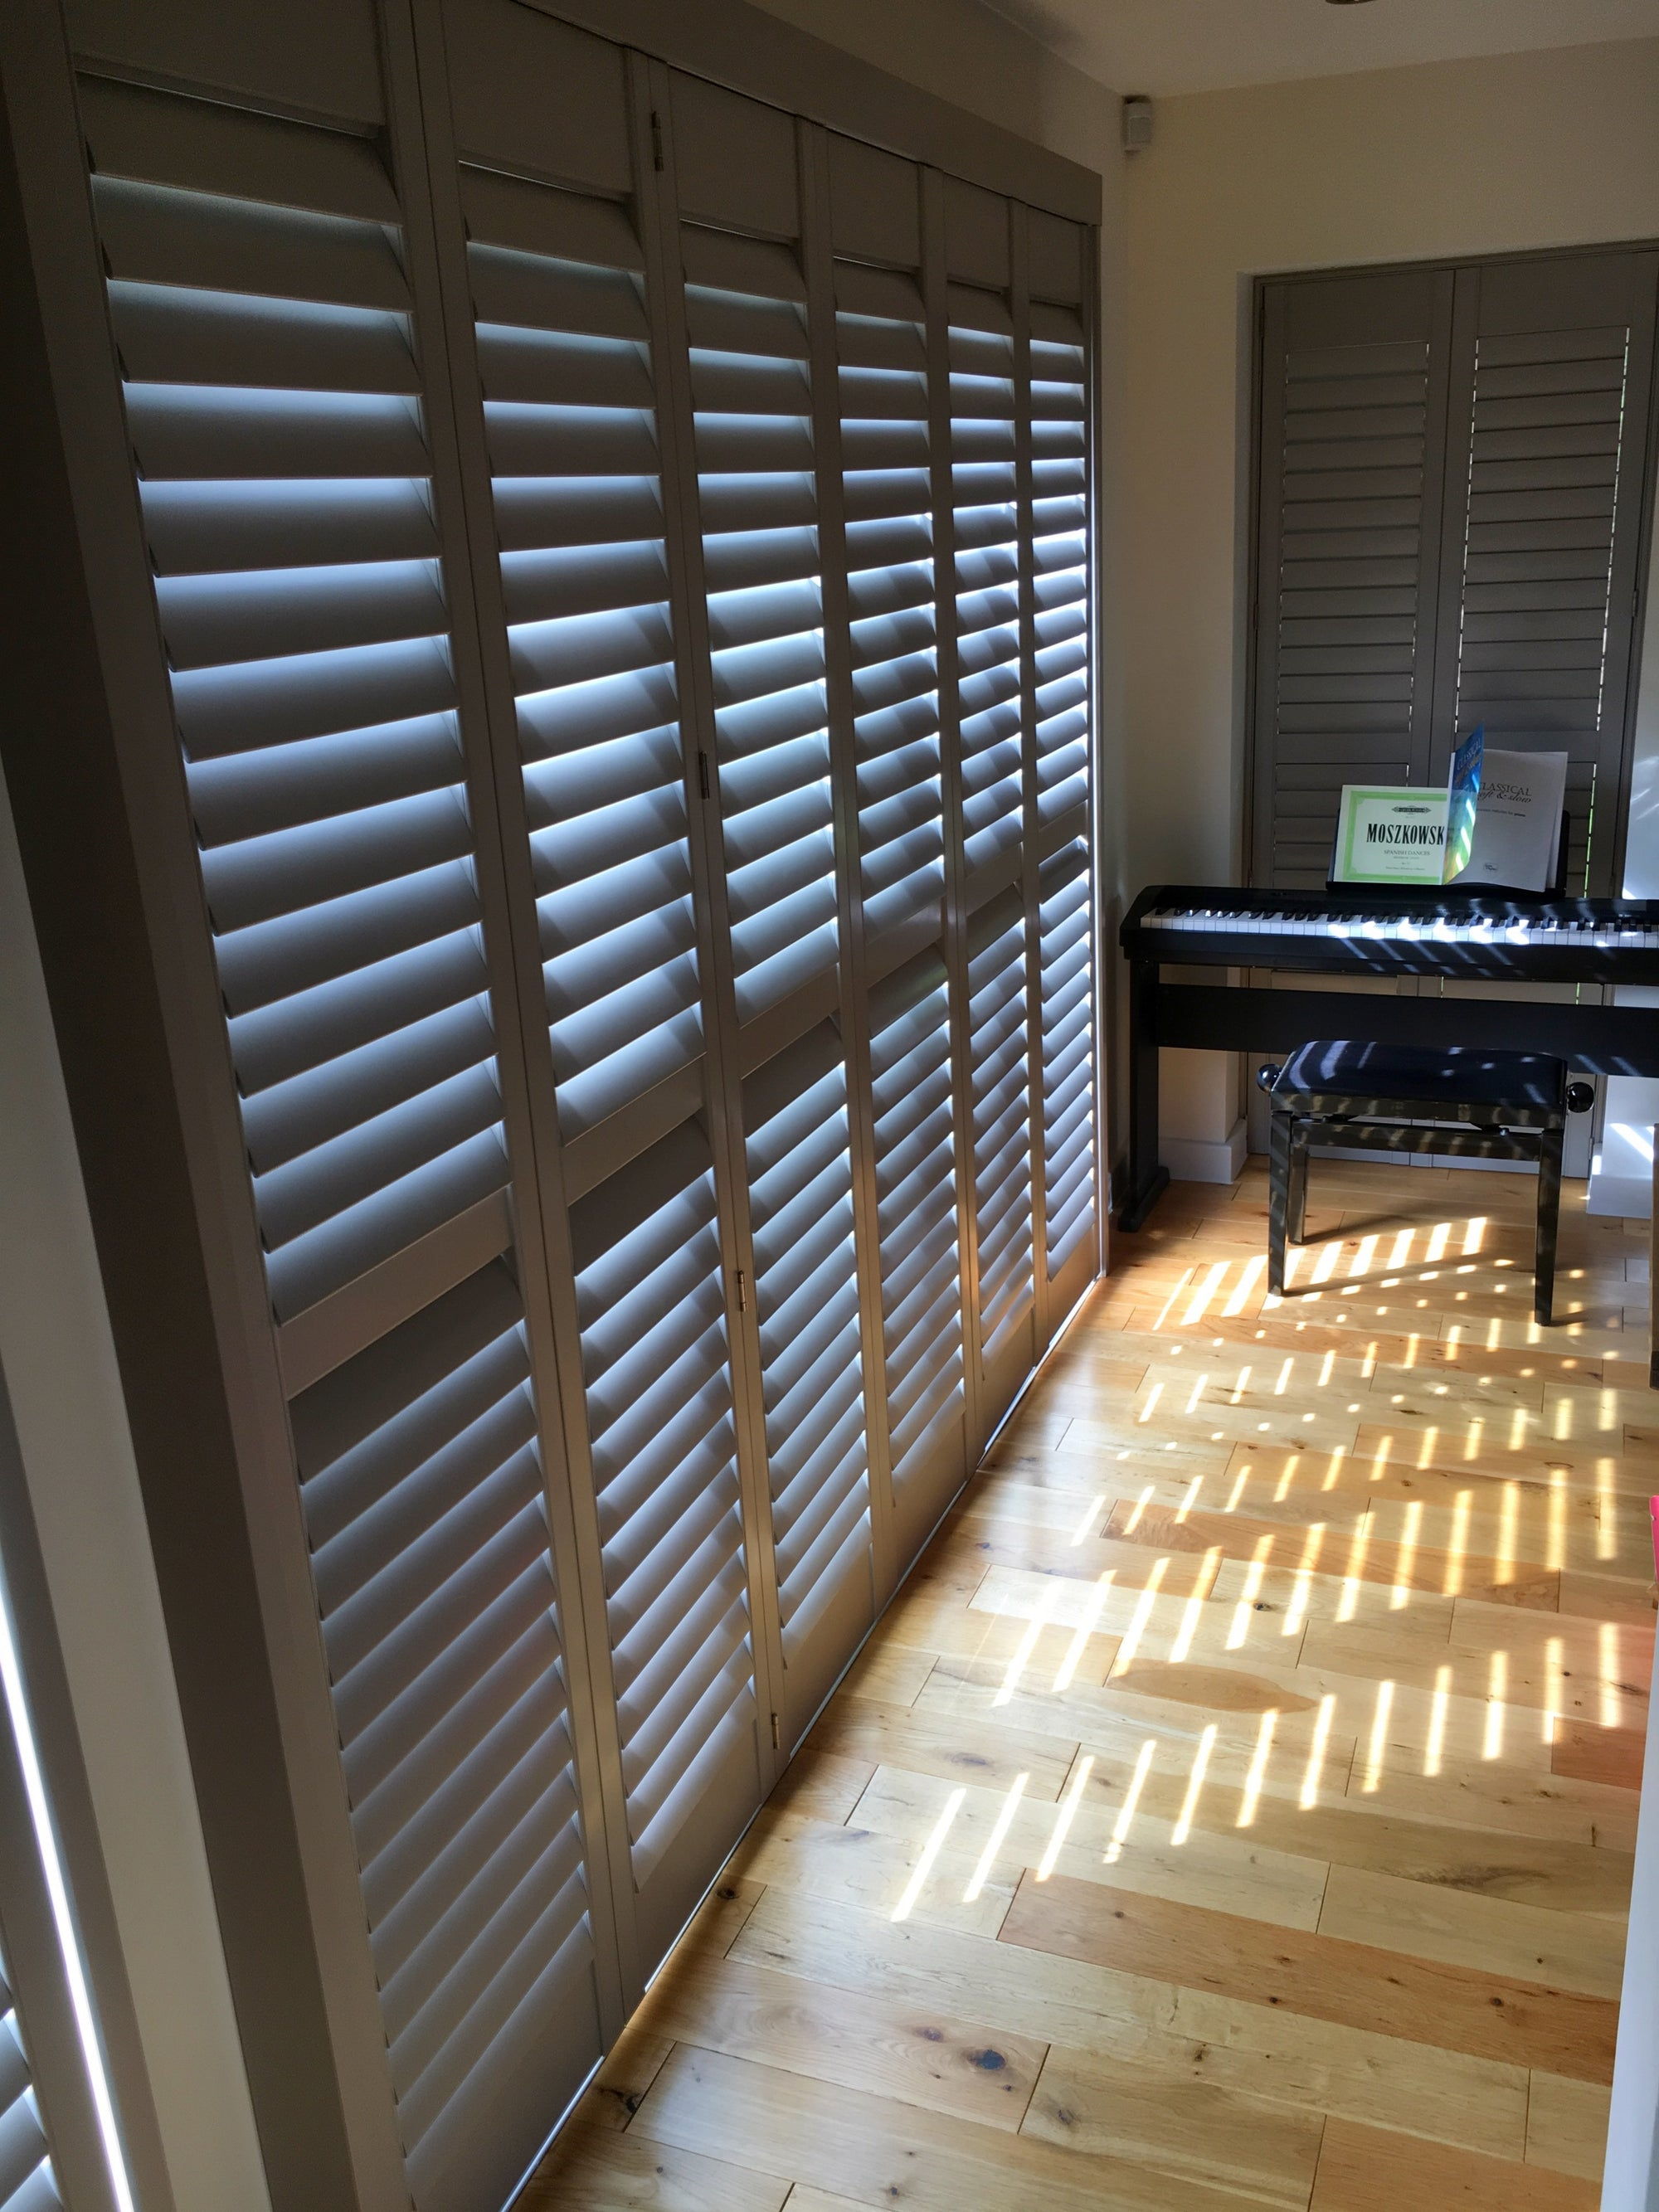 Bifold wood shutters from Paul Christian Bristol